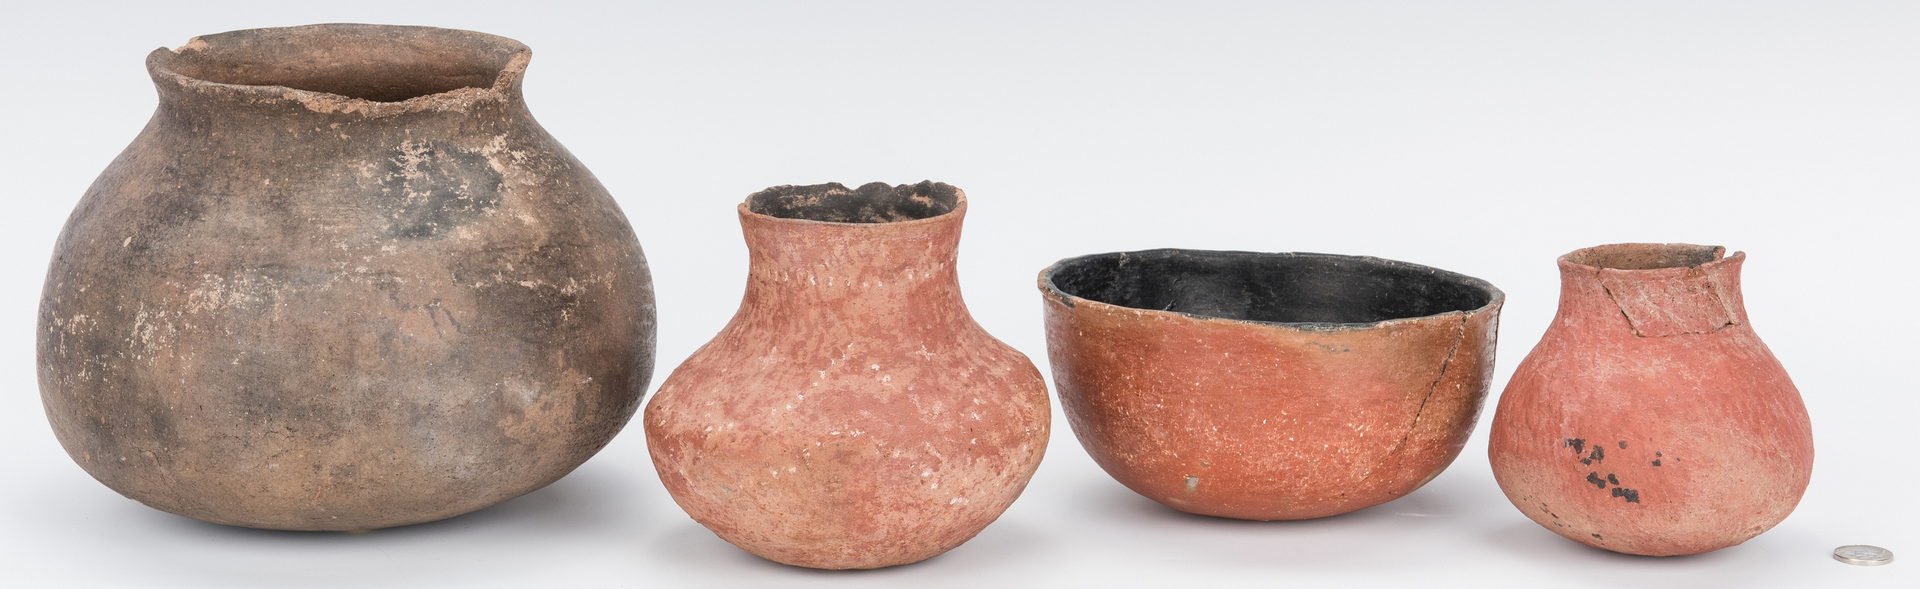 Lot 588: 5 Native American Pottery Pots, Salado & Gila Rive